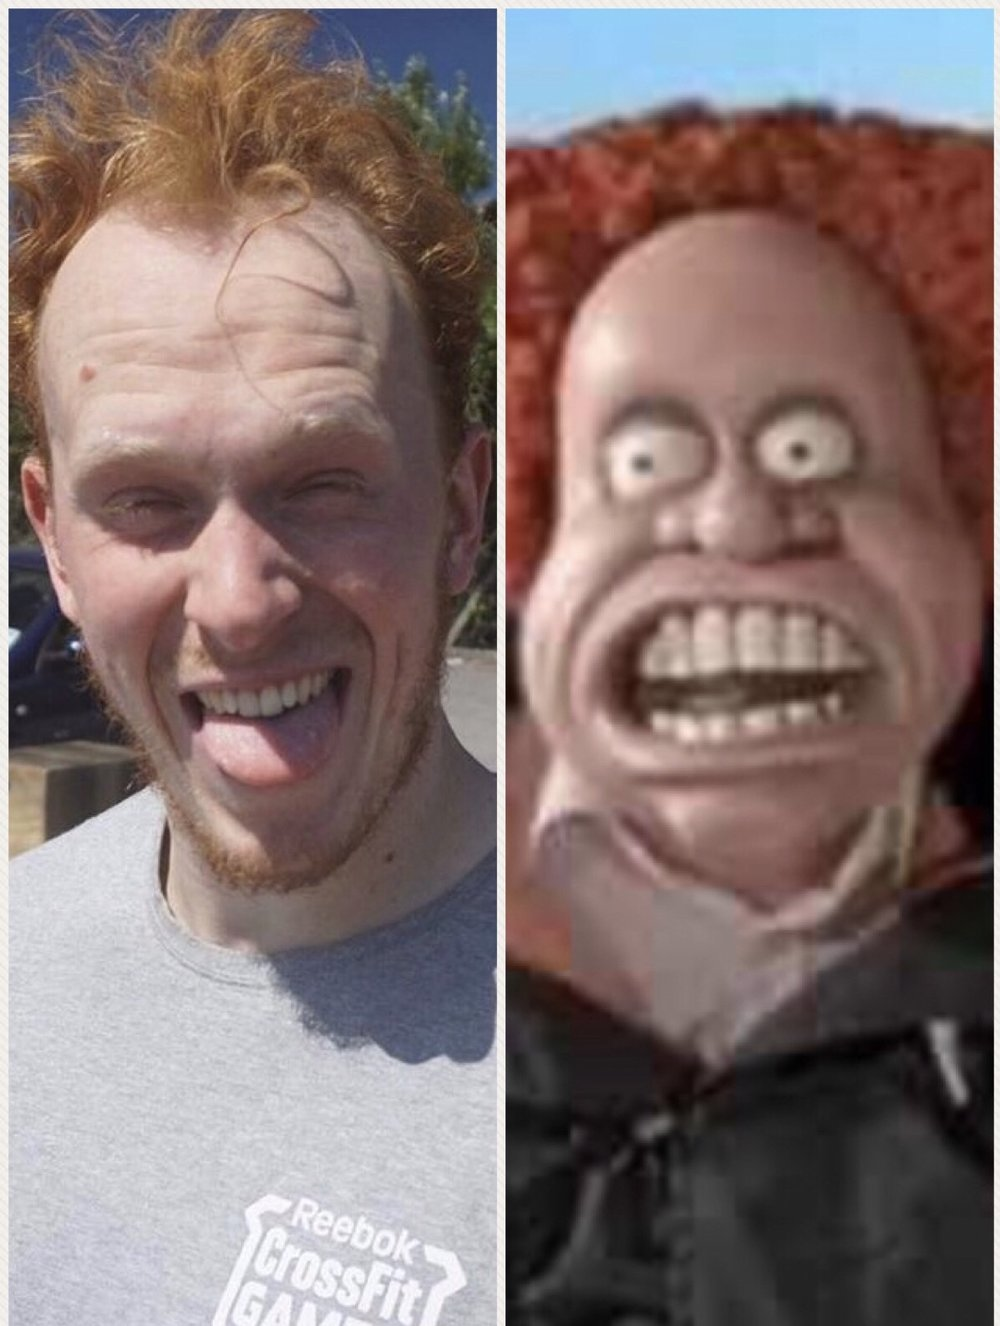 The resemblance is uncanny!